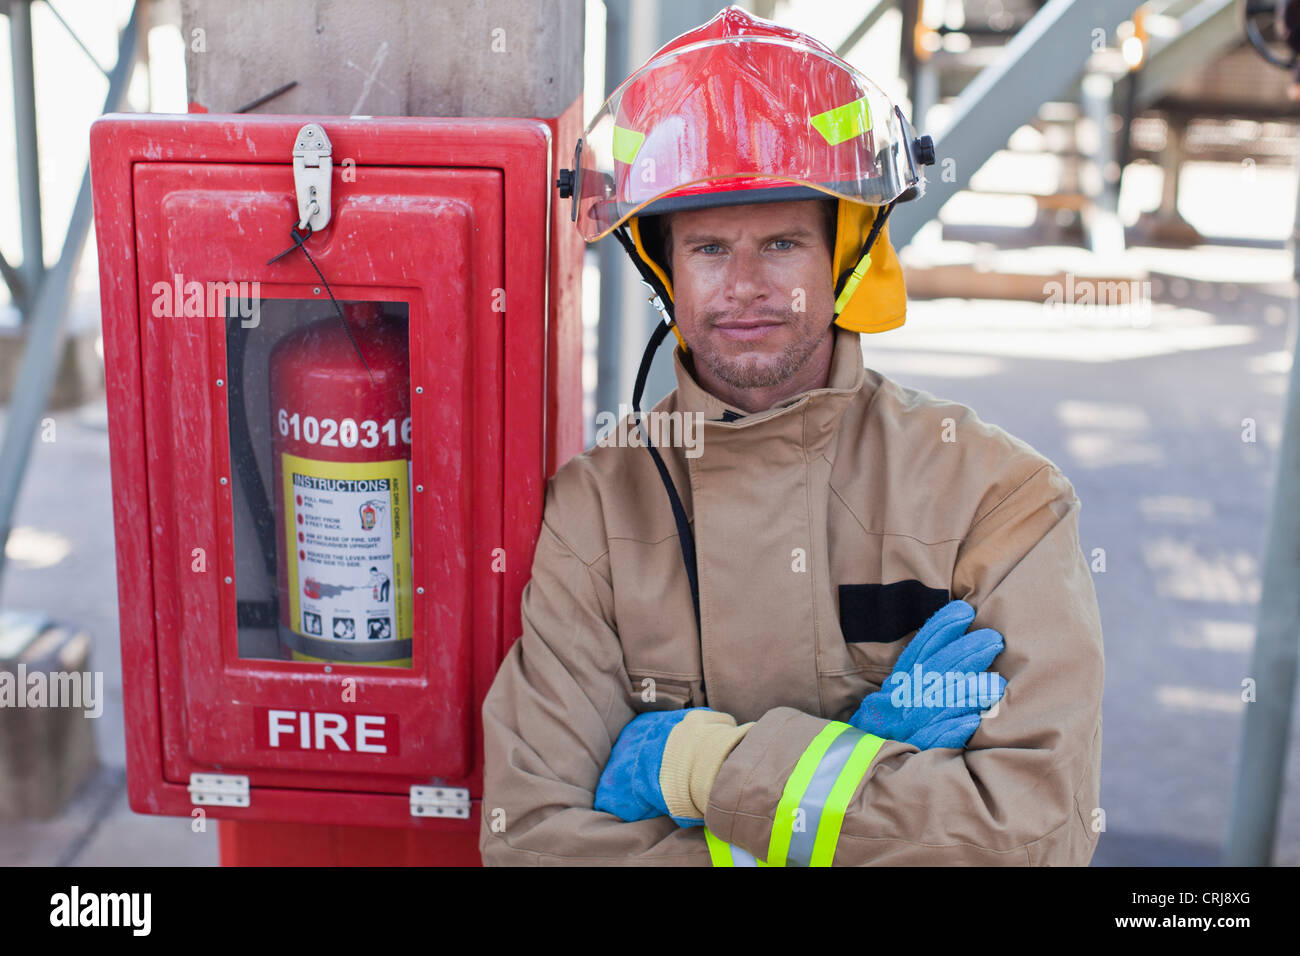 Firefighter smiling on site - Stock Image